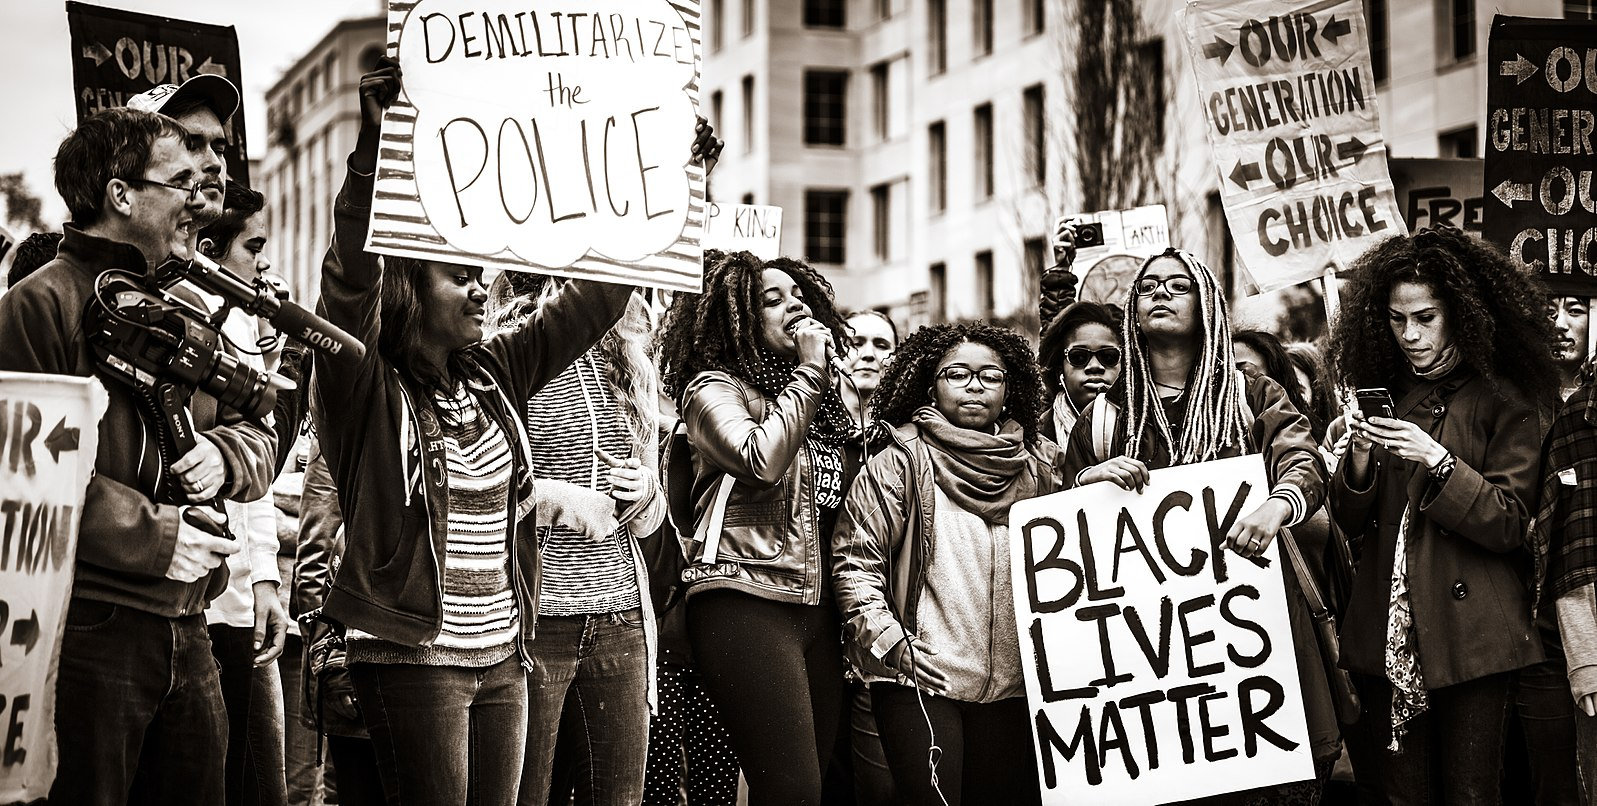 Black and white photo of a Black Lives Matter protest.